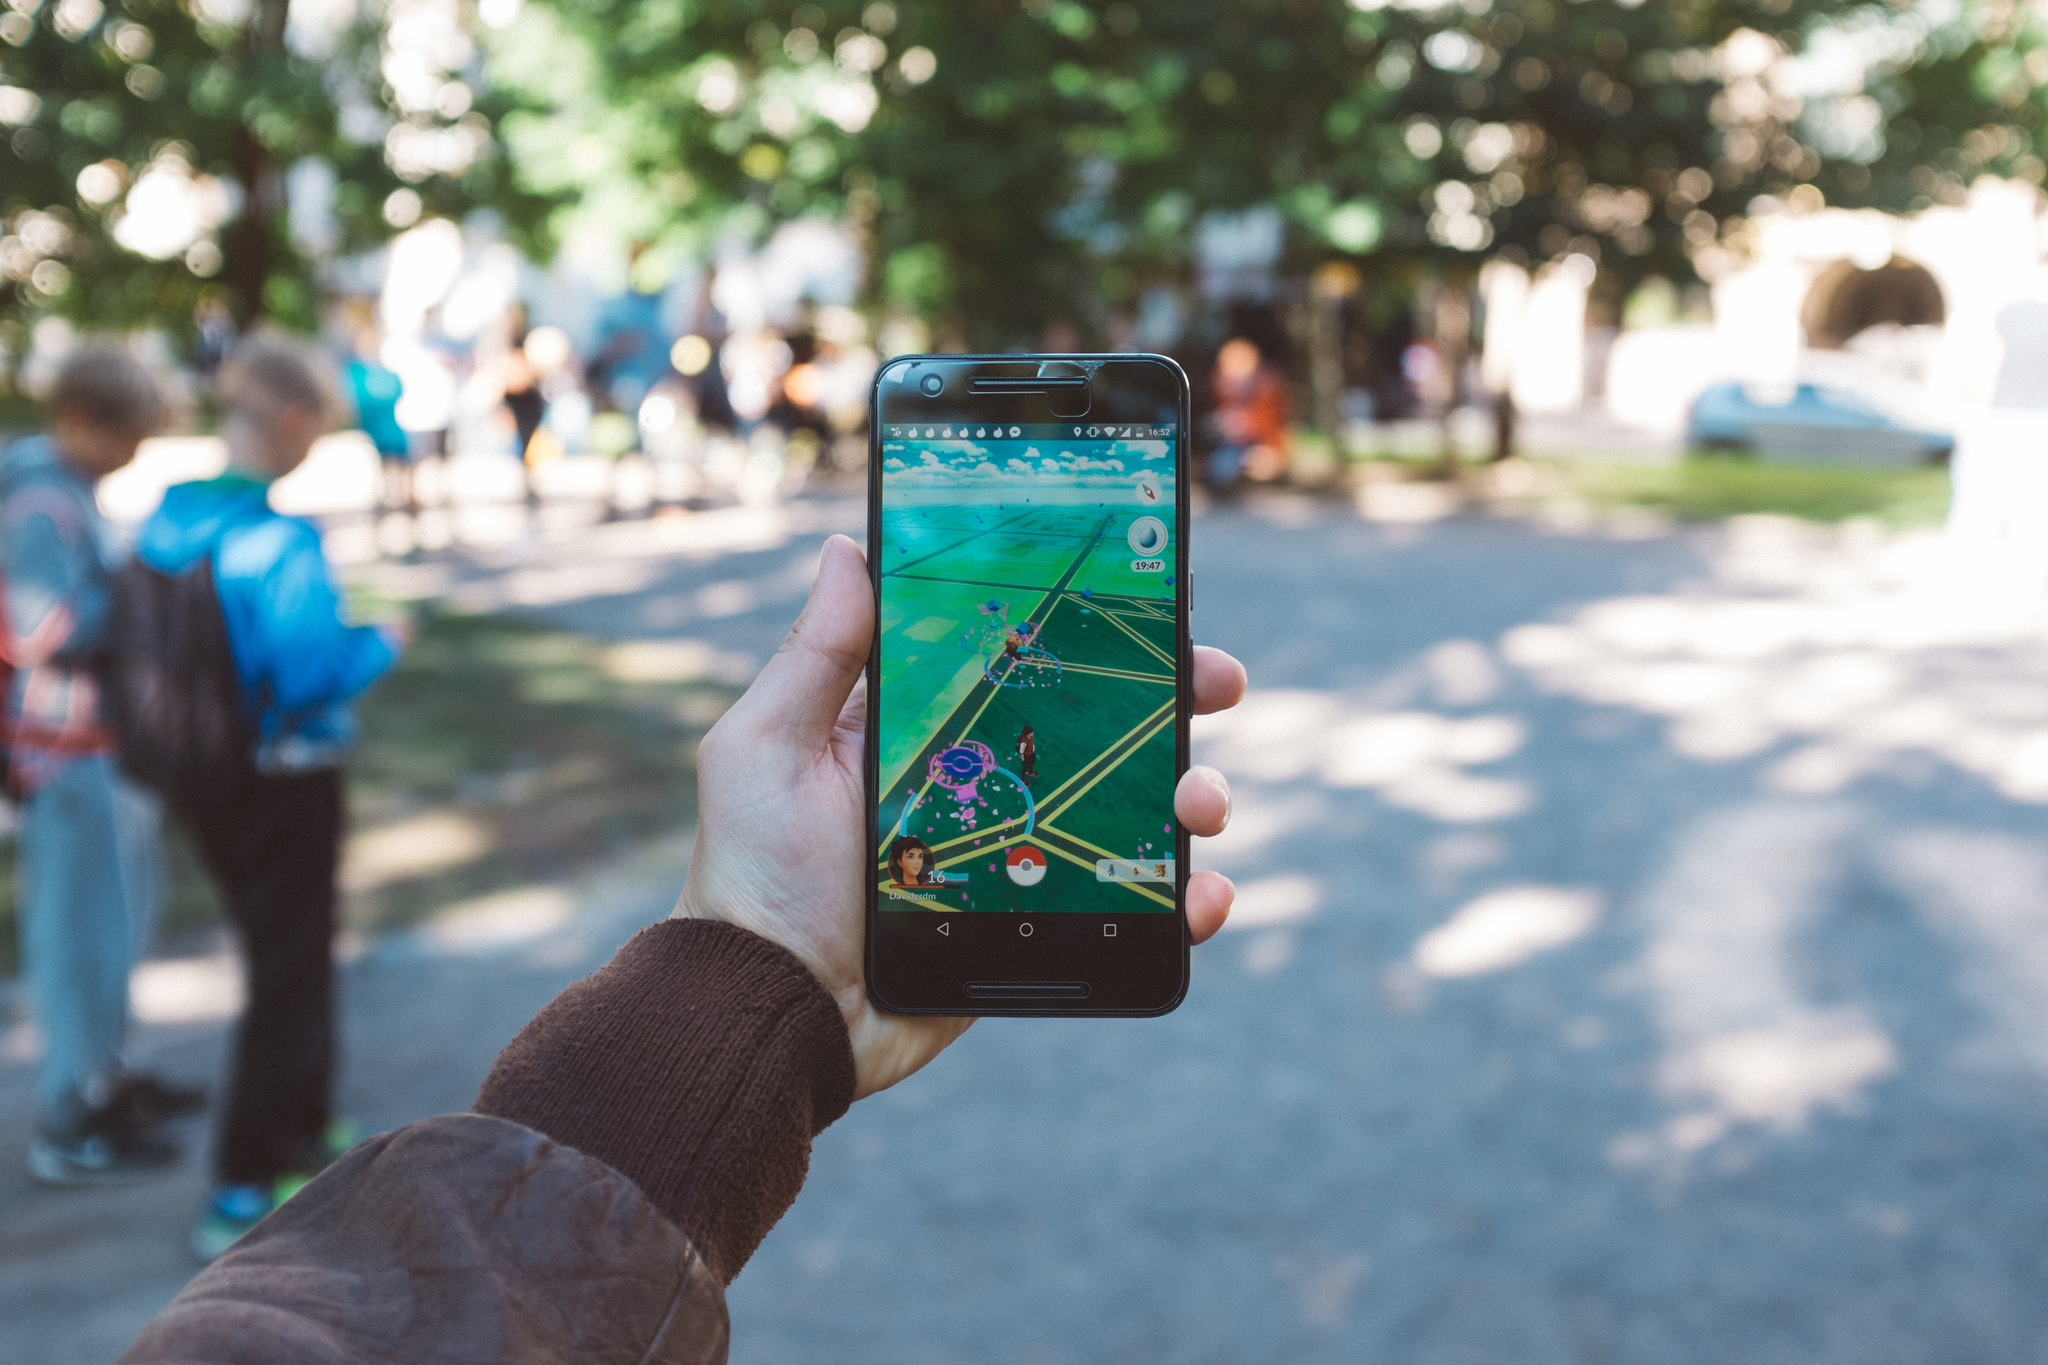 A playful new layer of civic engagement: Why Knight teamed with Niantic to bring Pokémon GO to community events